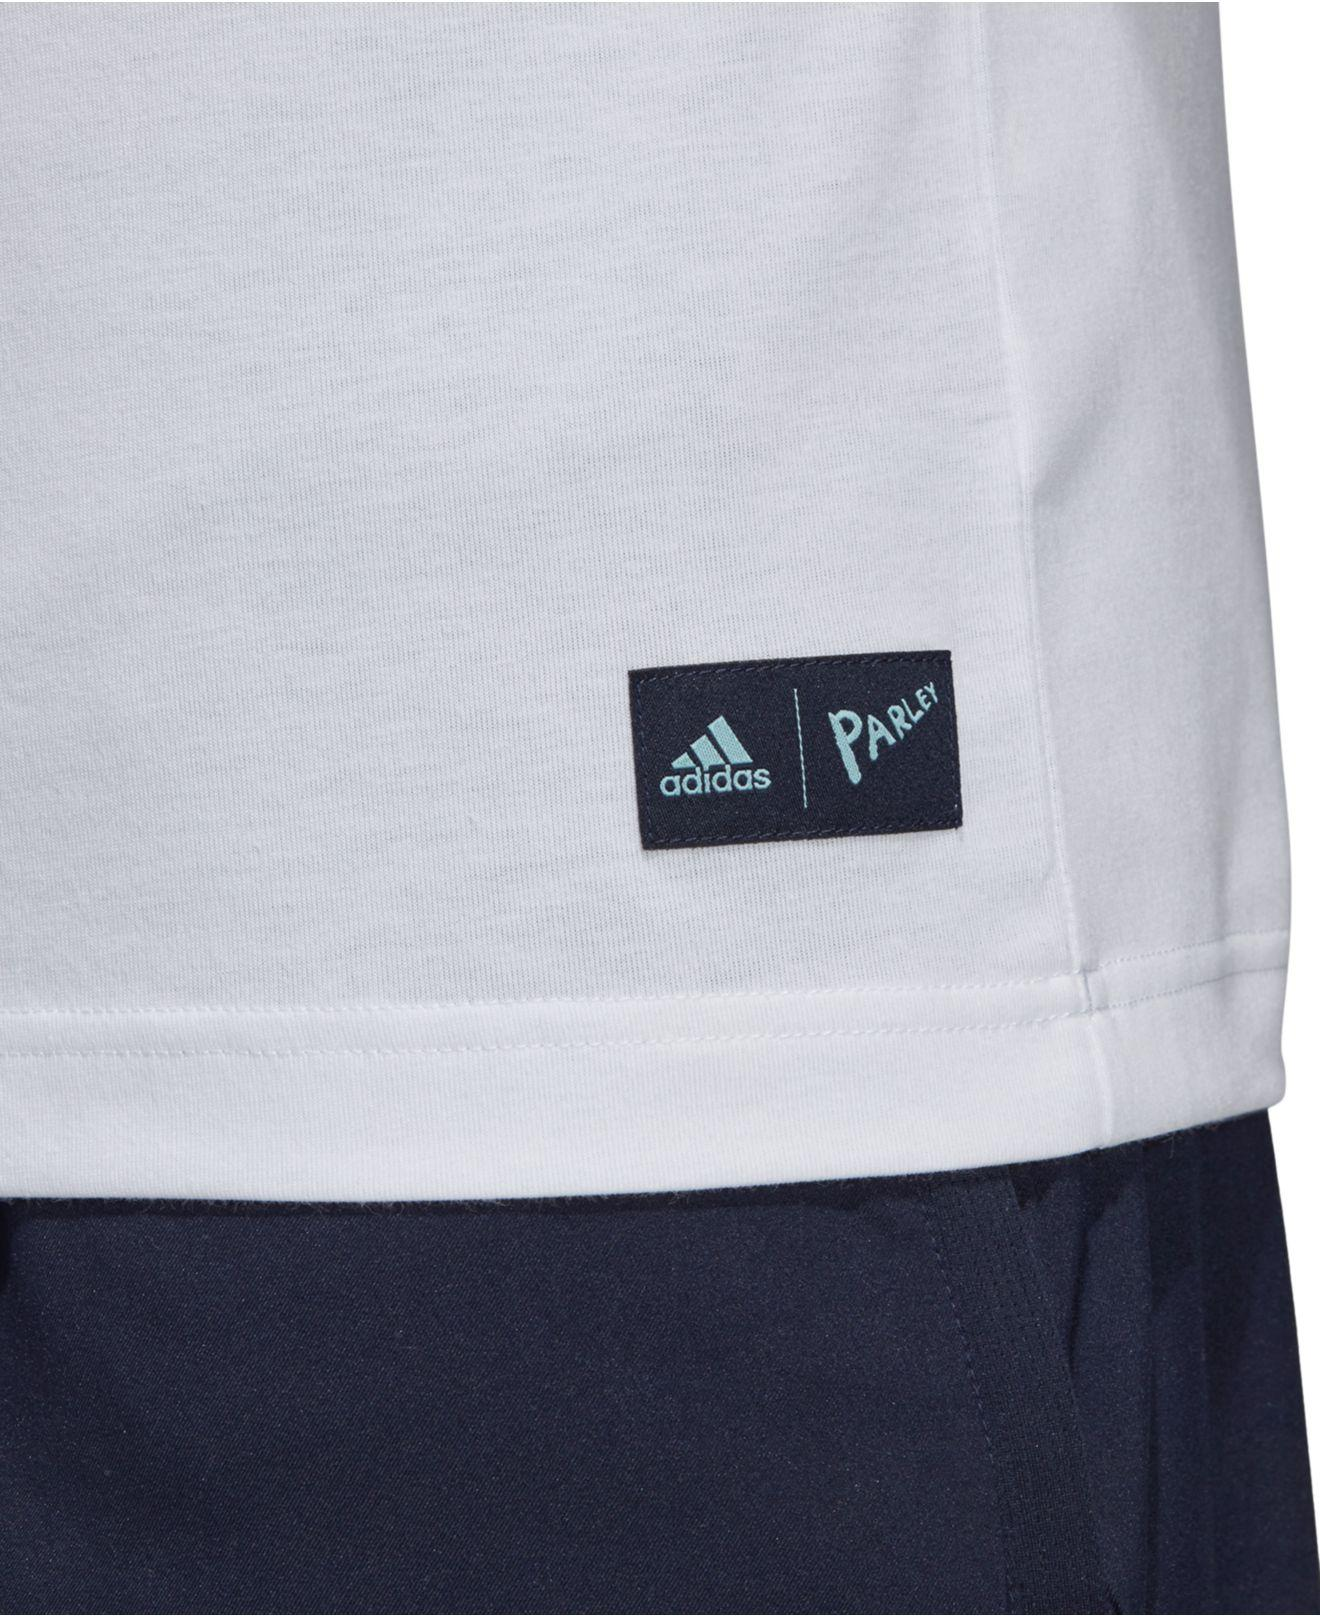 26e9bef13b Lyst - adidas Parley Climalite® Pocket T-shirt in White for Men